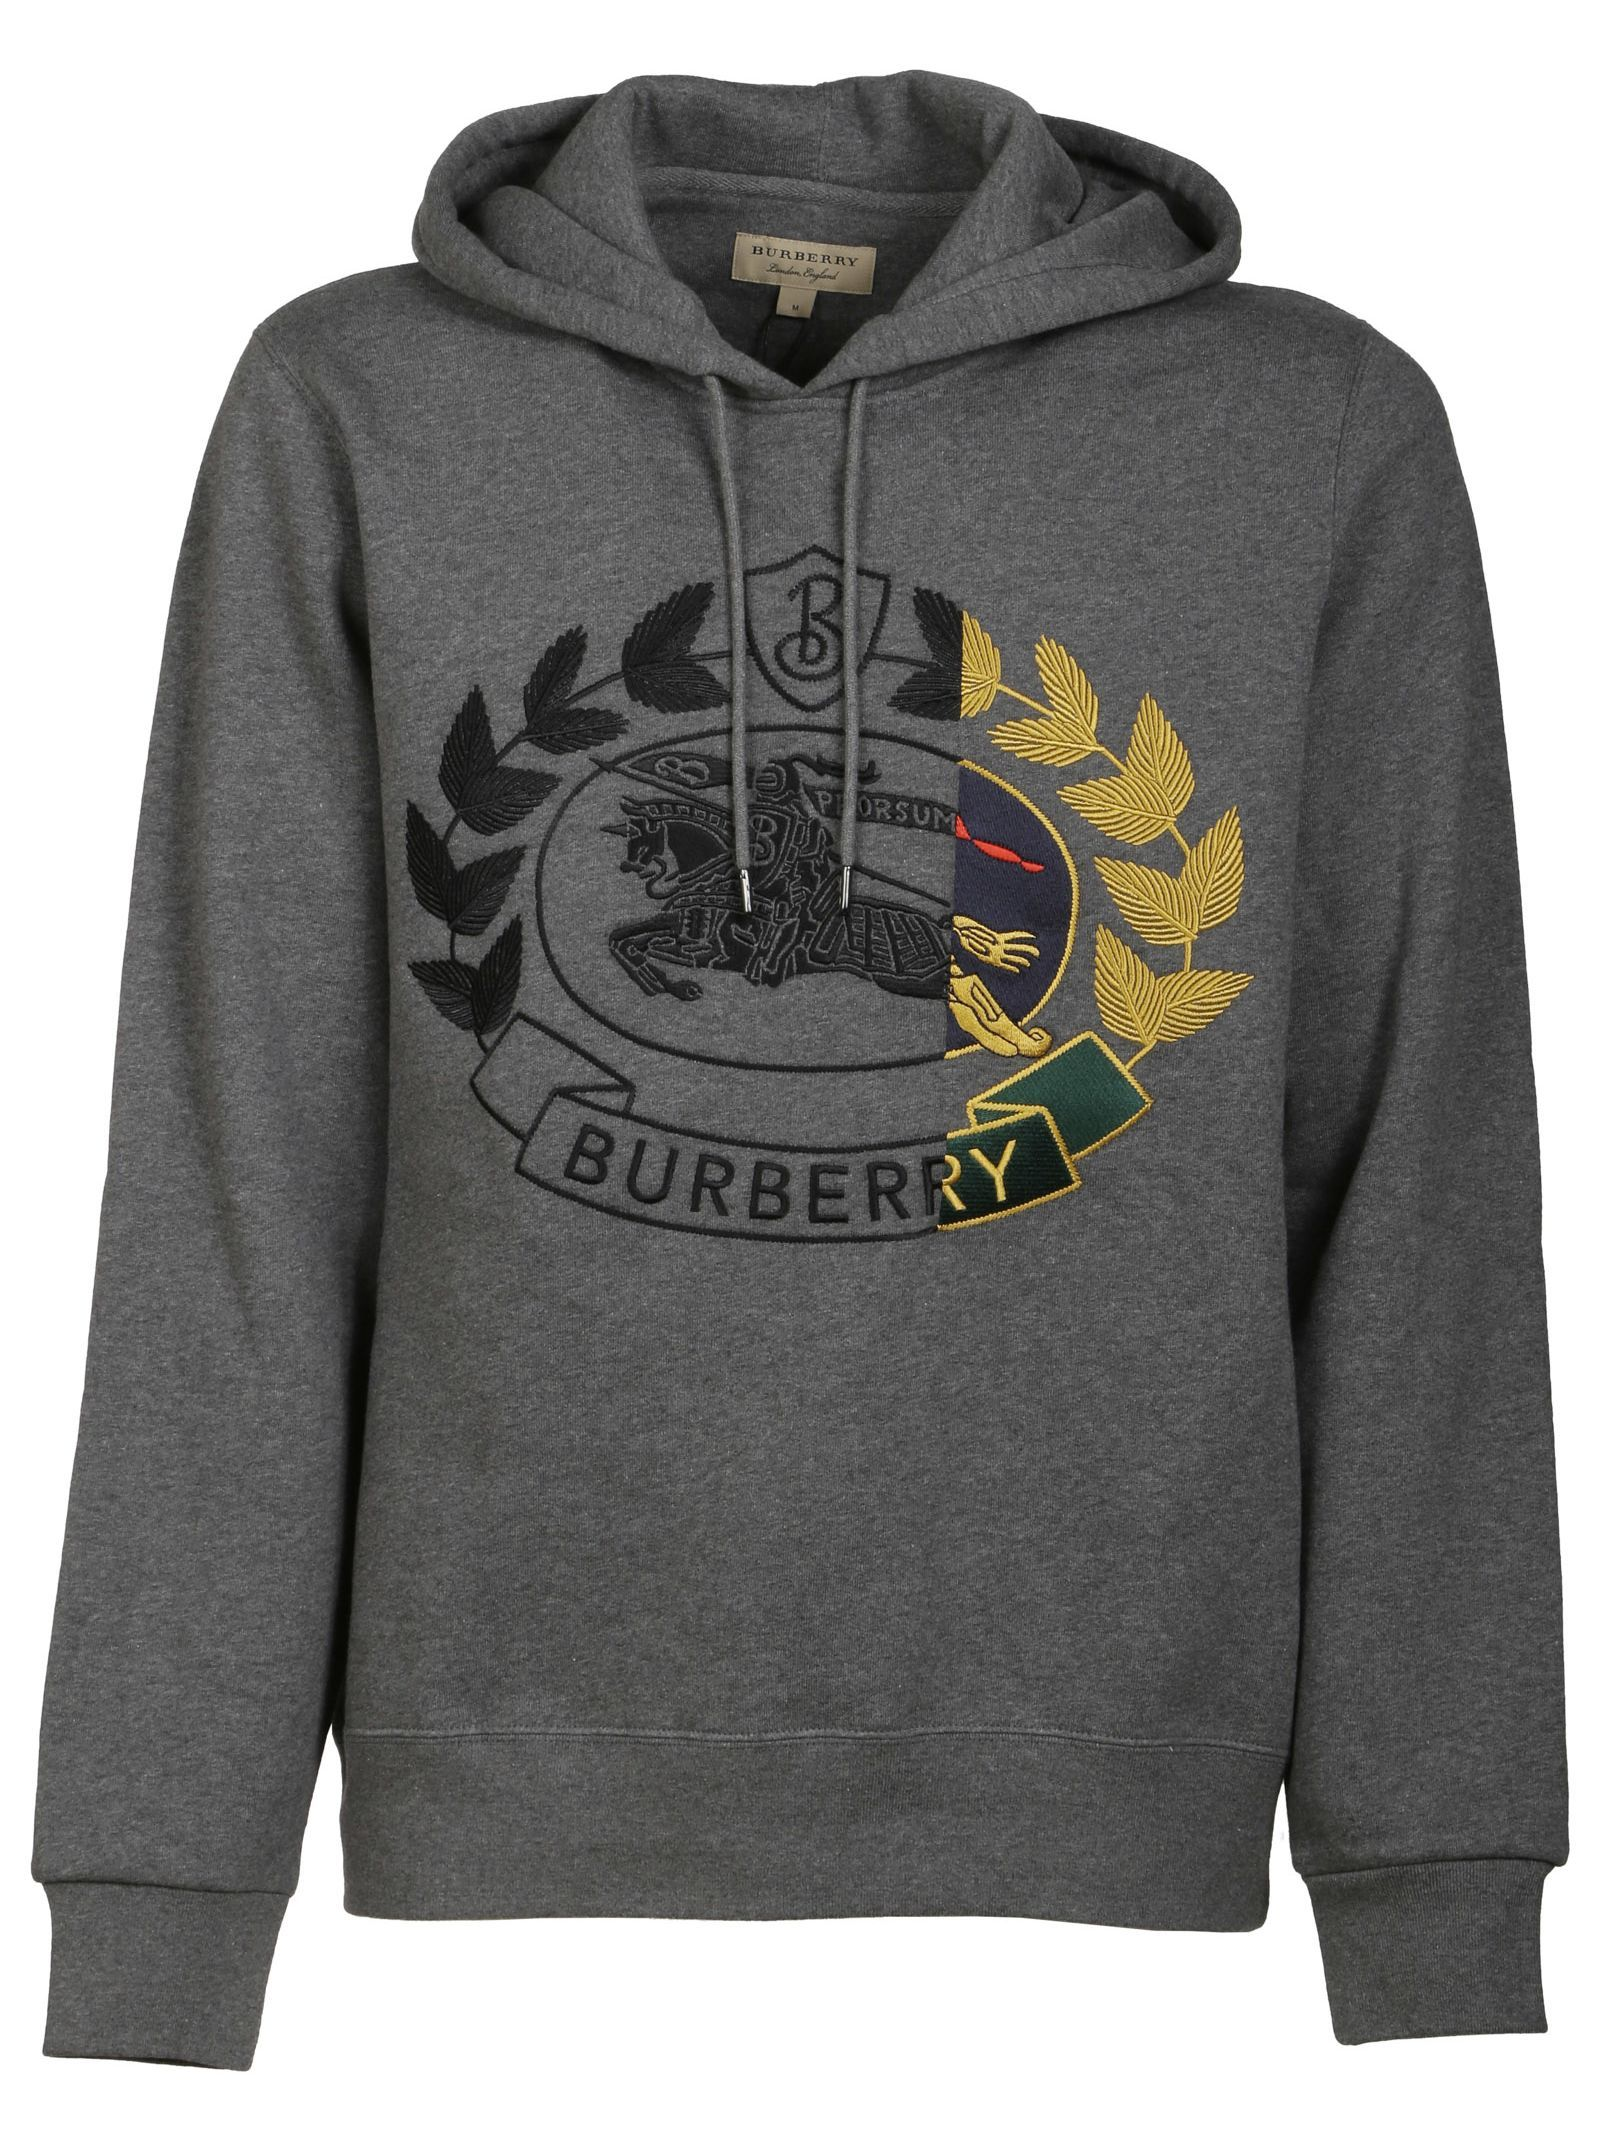 Burberry Contrast Embroidered Crest Logo Hoodie In Grey Modesens Hoodies Embroidered Crests Crest Logo [ 2136 x 1600 Pixel ]